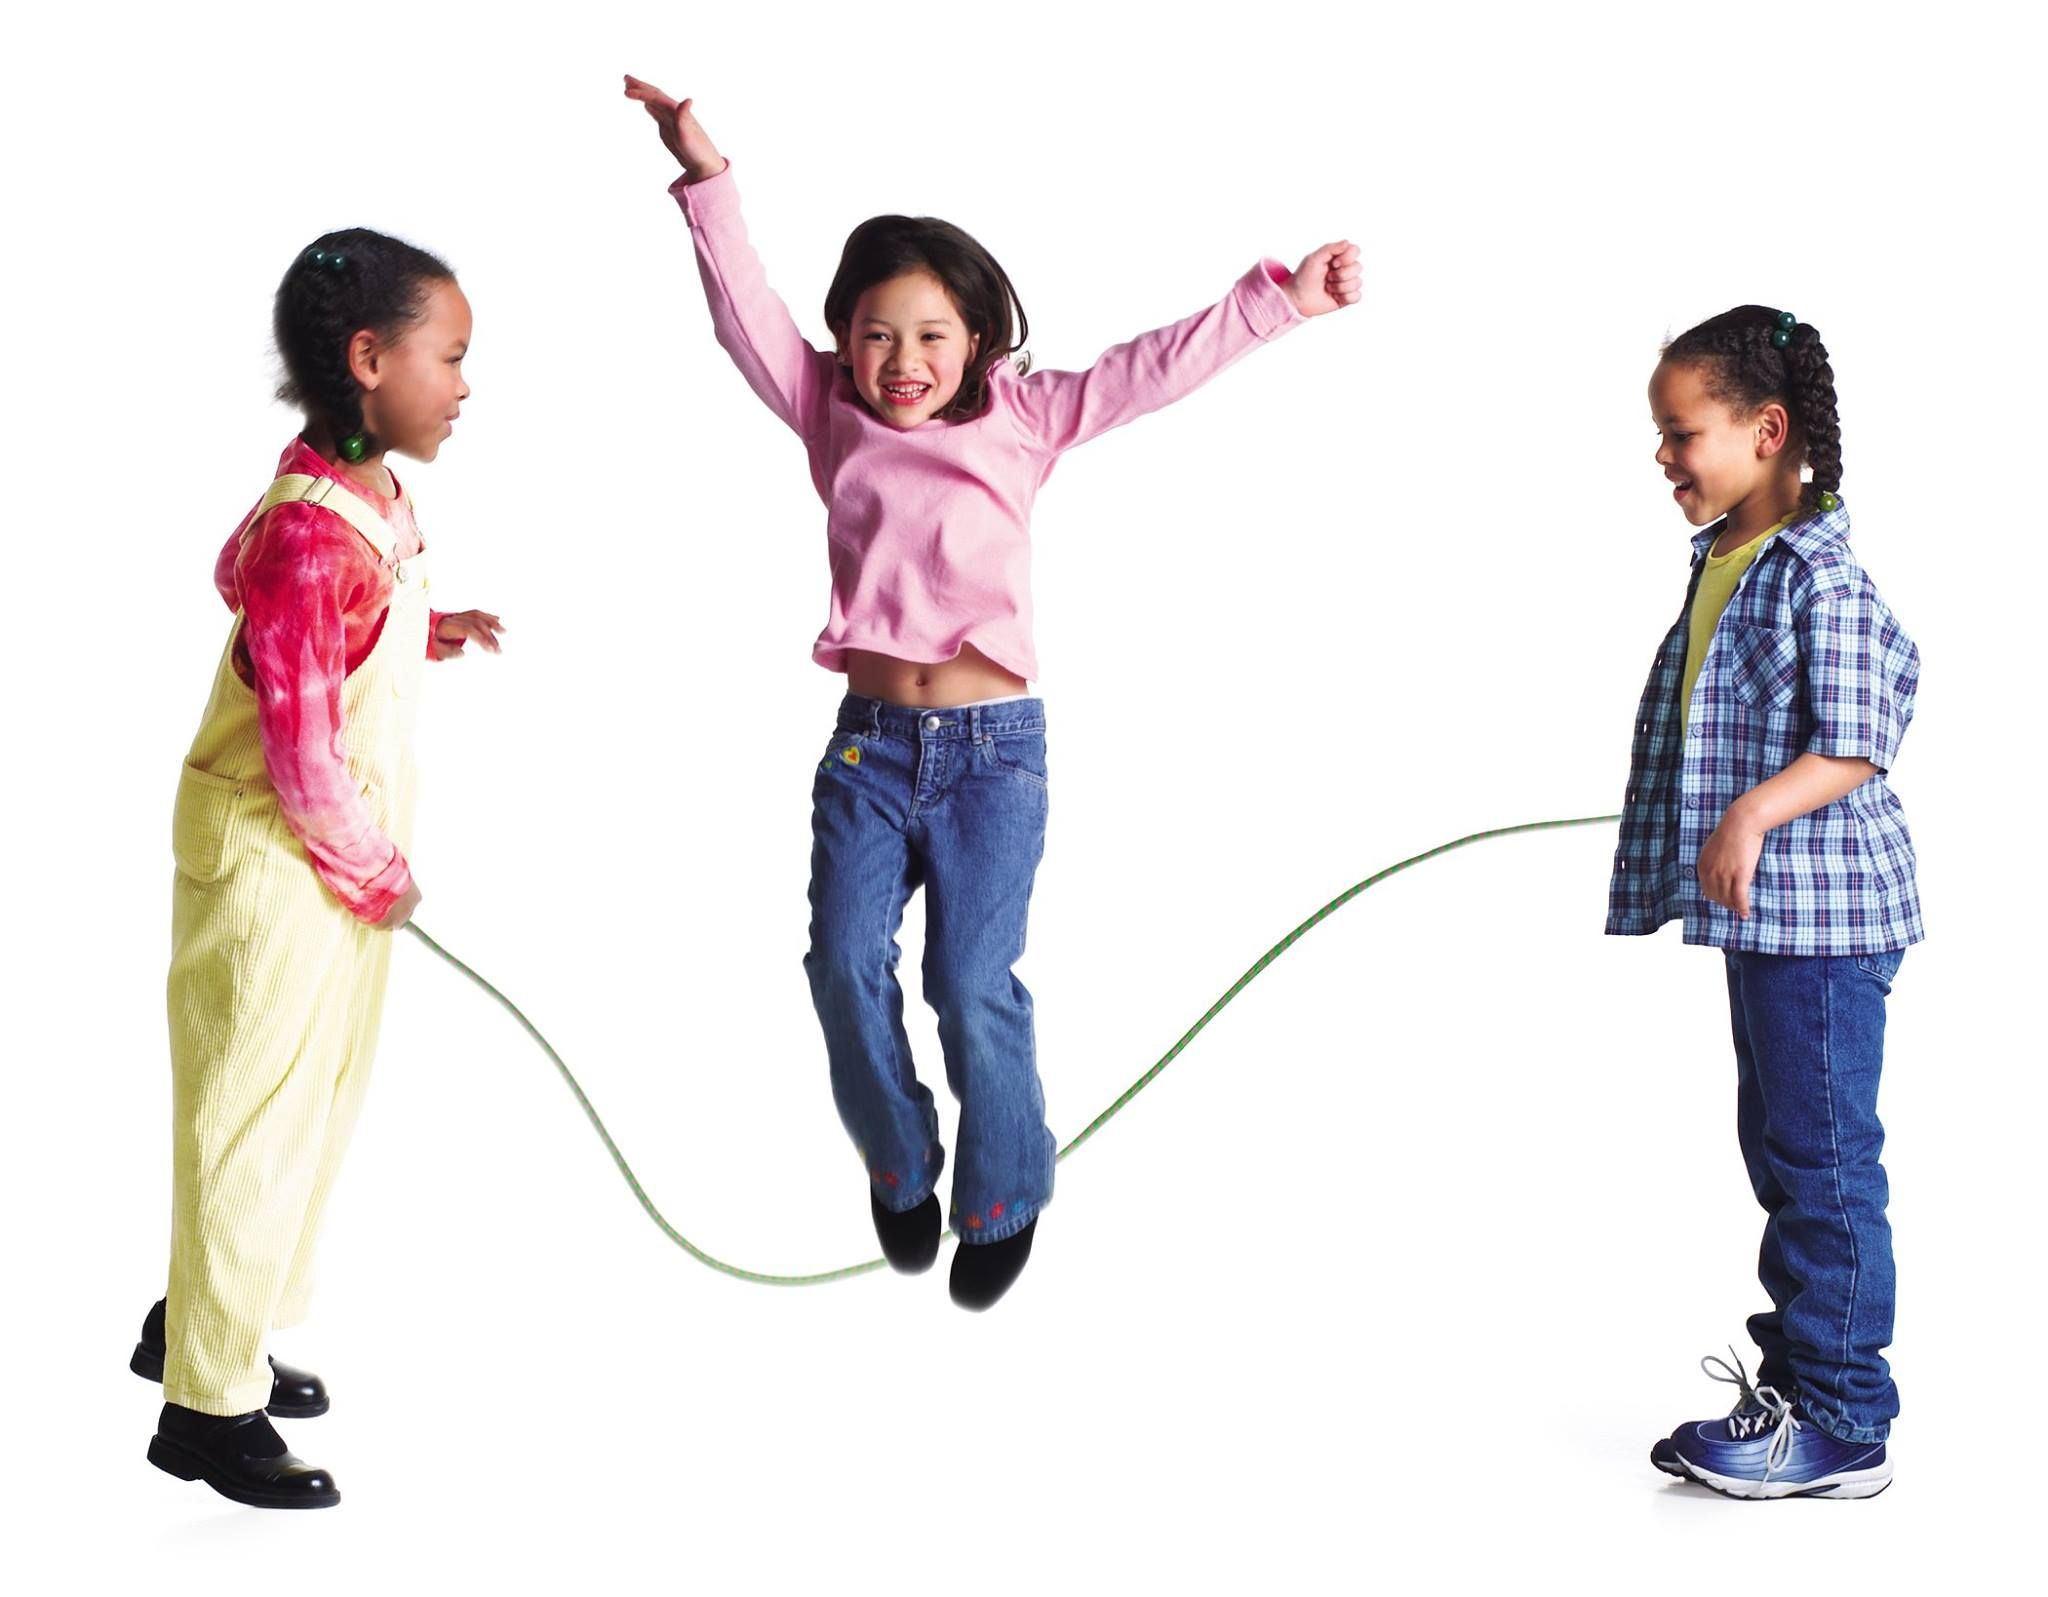 Today's healthy tip make time to play! People cutout